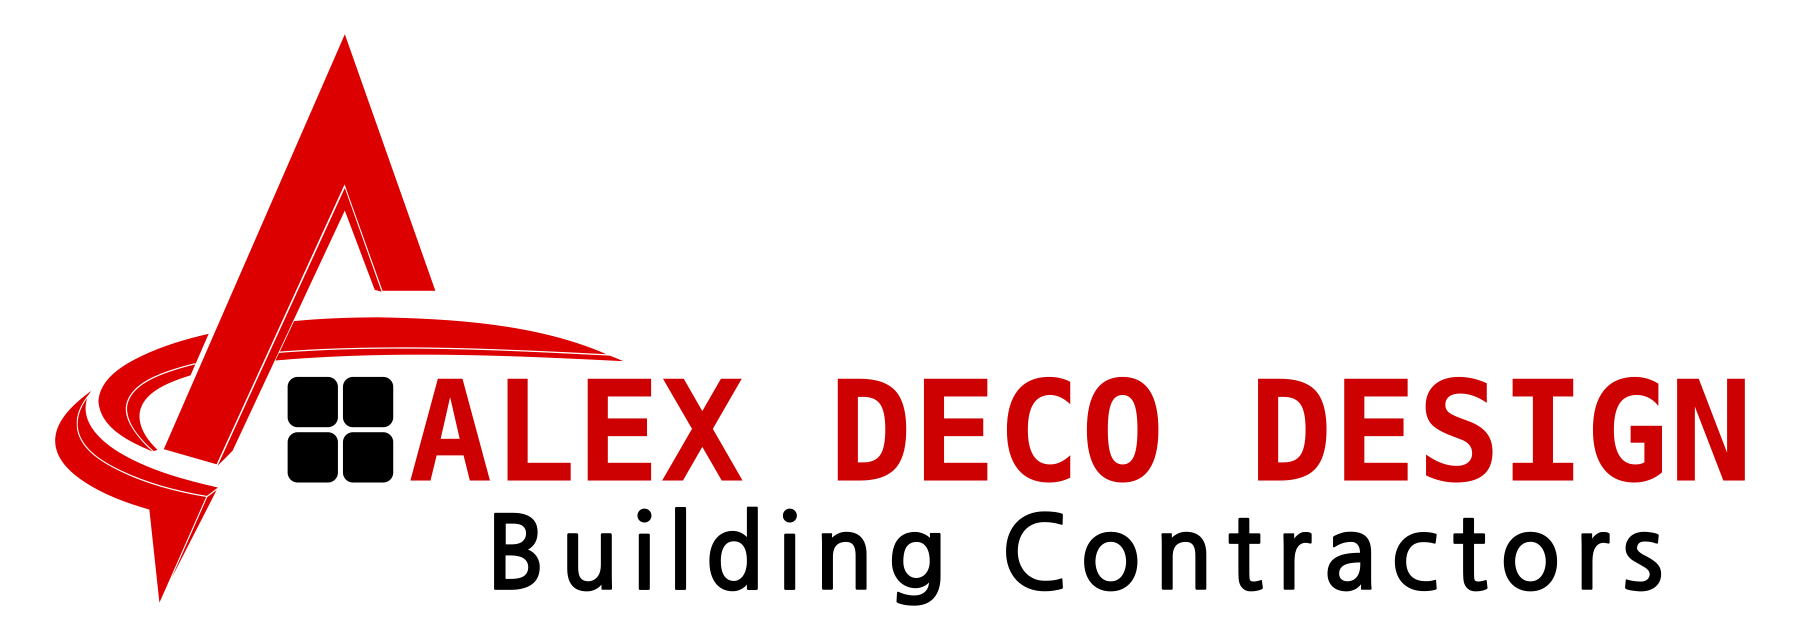 Alex Deco Design